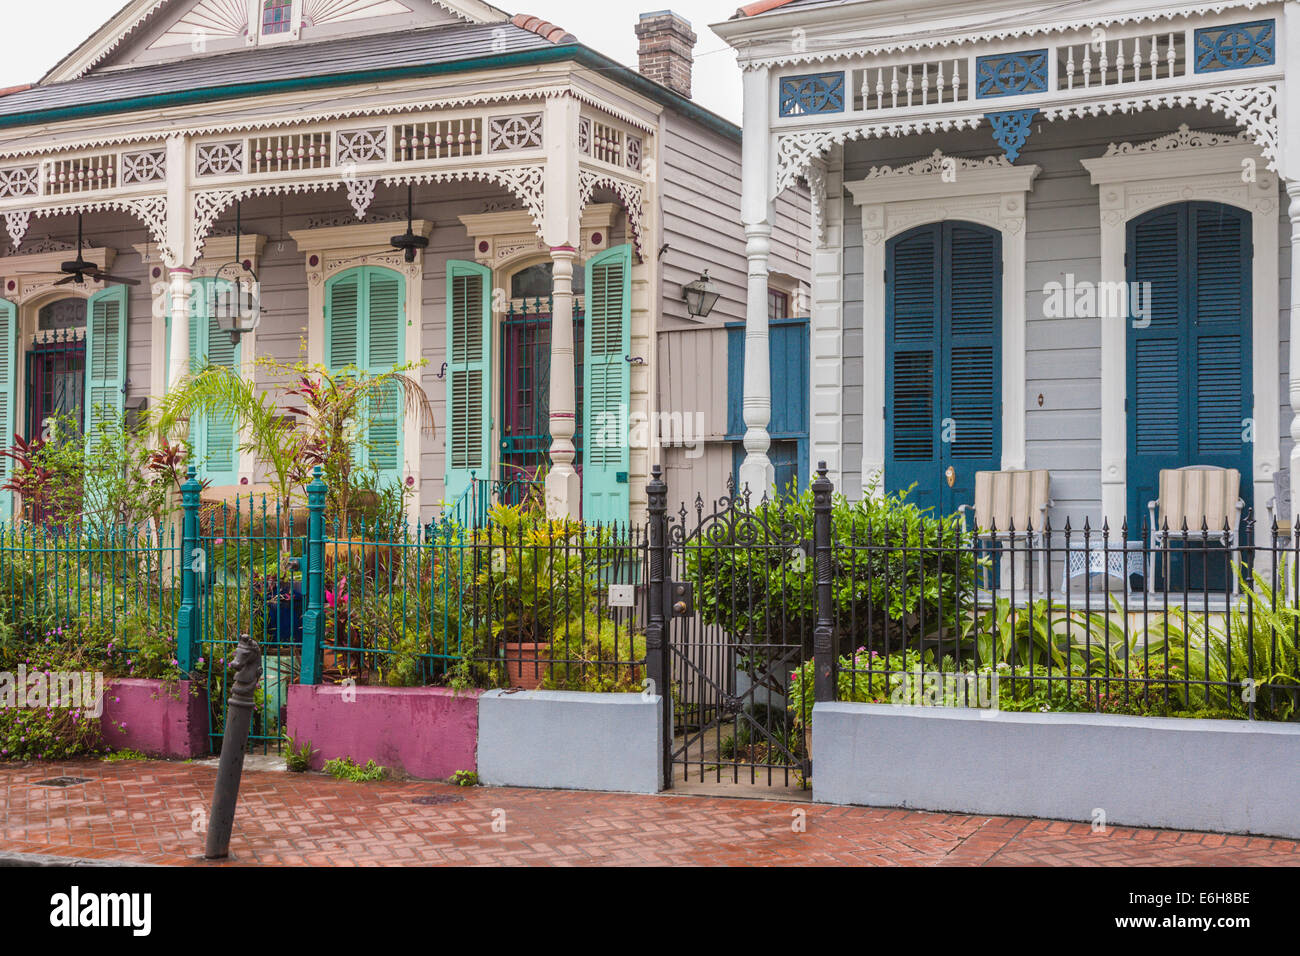 Typical duplex homes in the residential area of the French Quarter of New Orleans, Louisiana - Stock Image